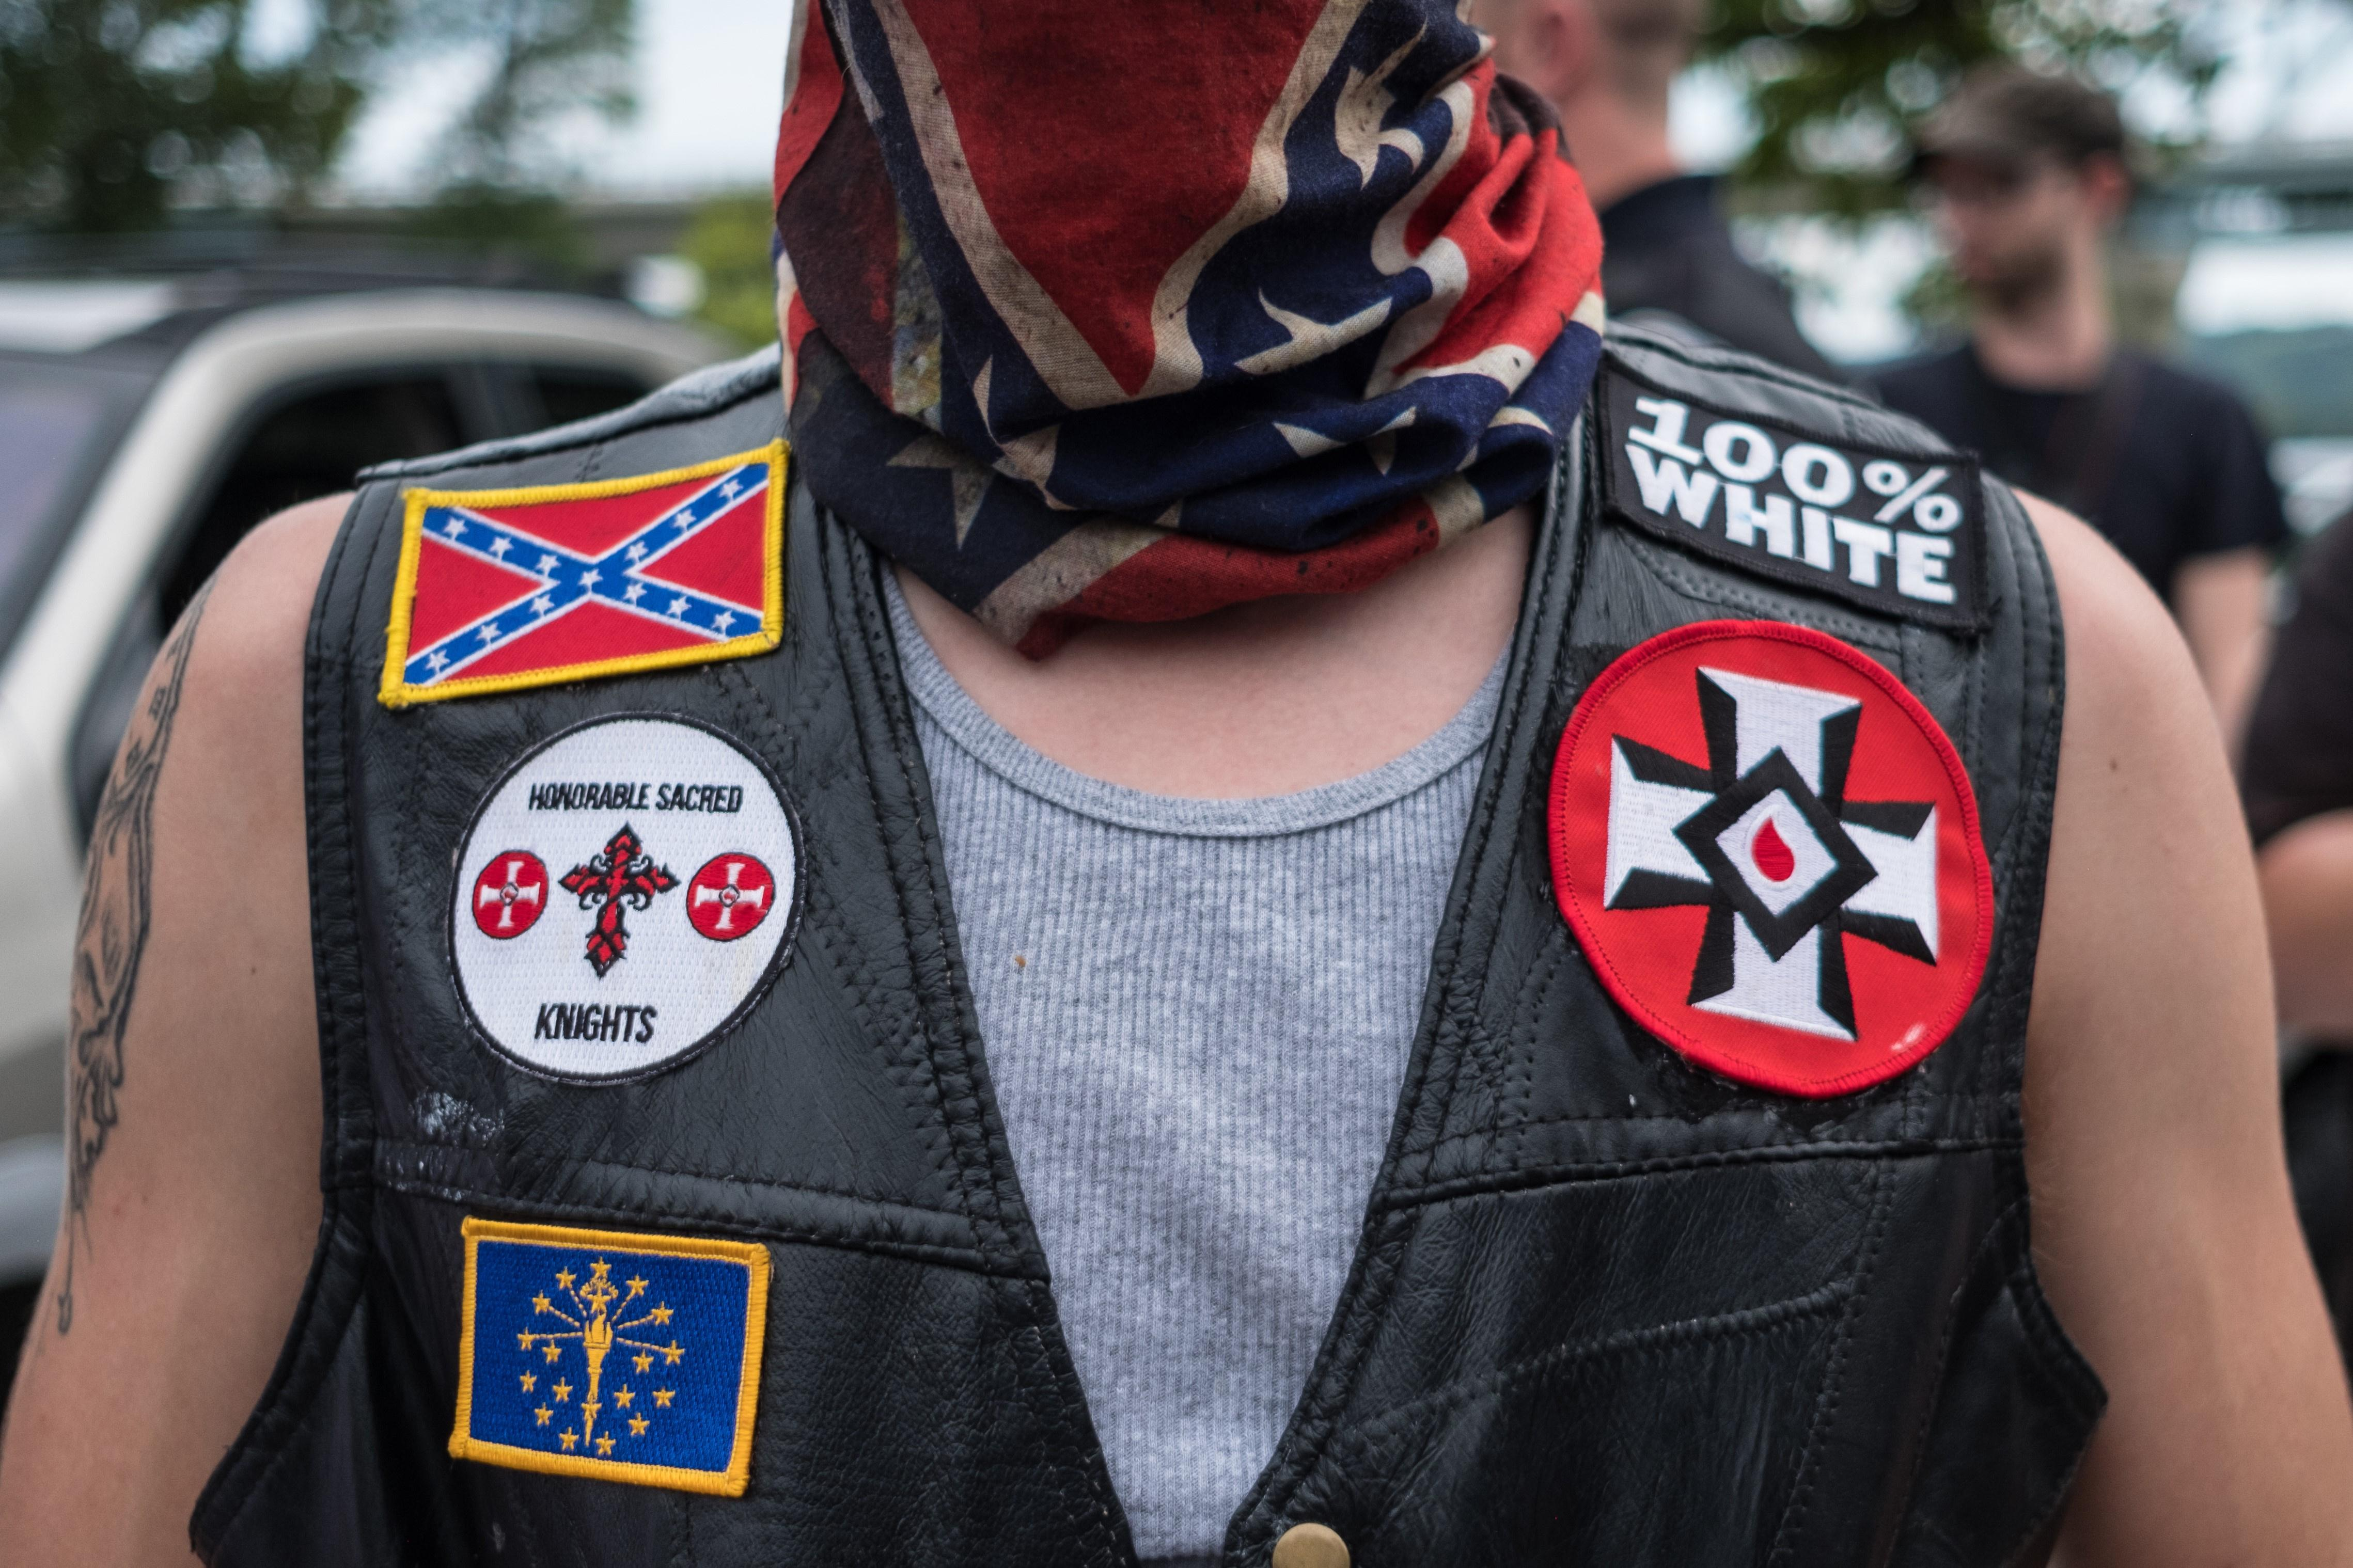 White nationalists are openly operating on Facebook. The company won't act